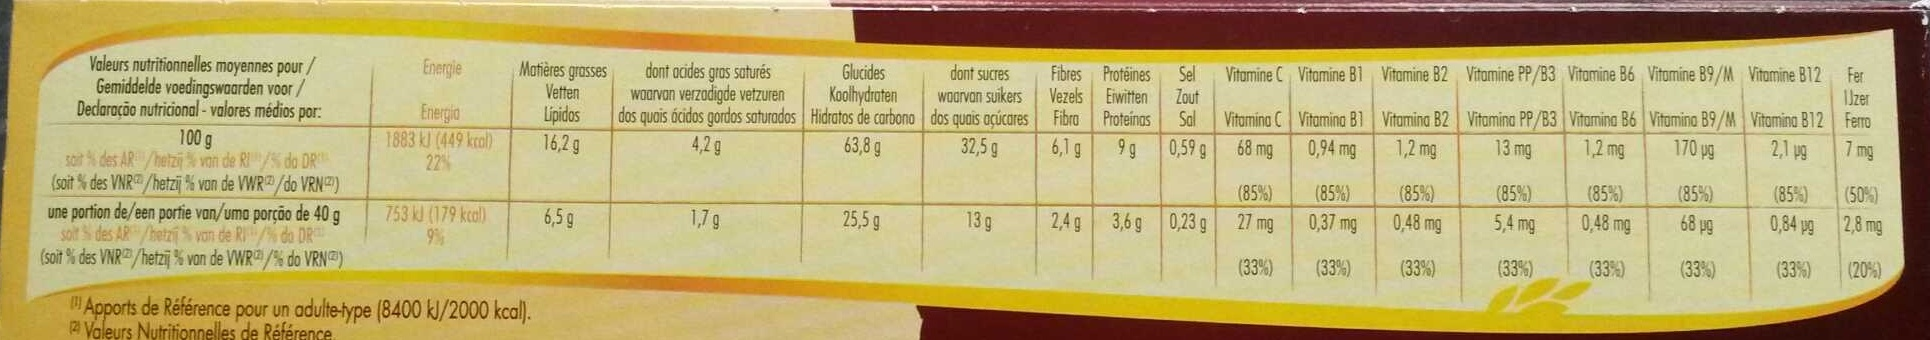 Crica 2 choco - Informations nutritionnelles - fr